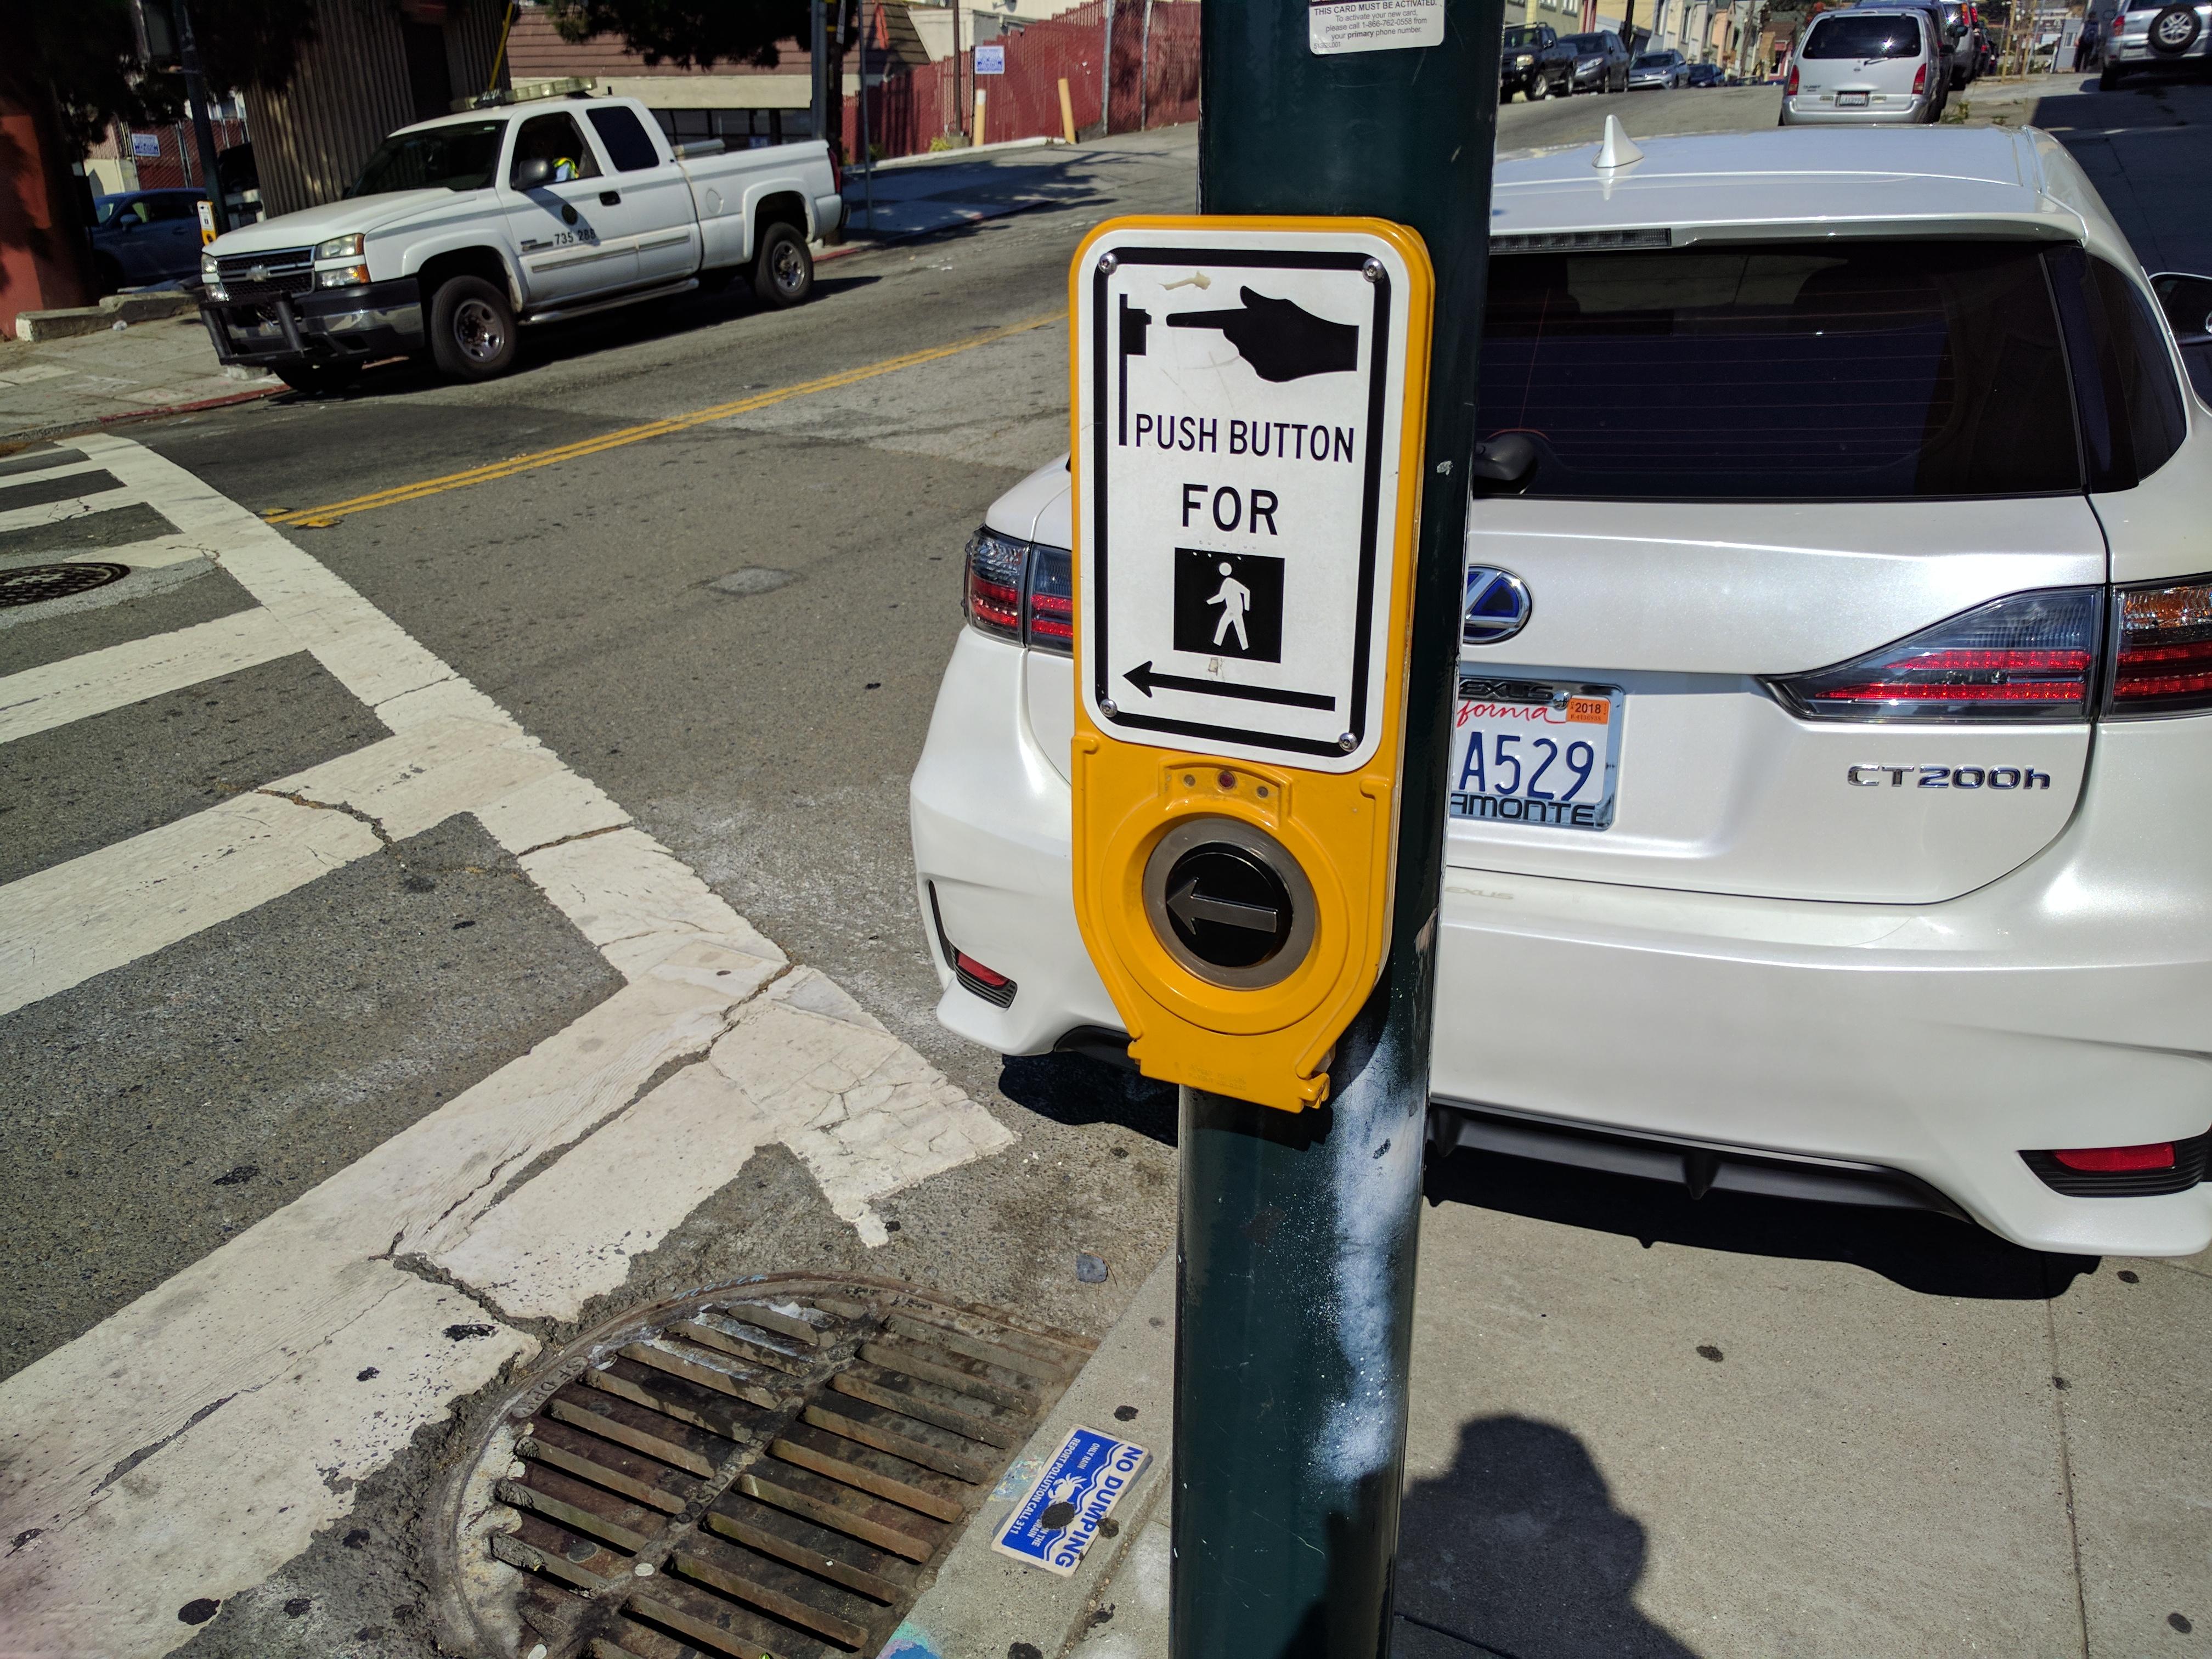 Between cars regularly parking on the sidewalk and beg buttons and countdown timers that go too fast for seniors to cross, the situation is untenable.